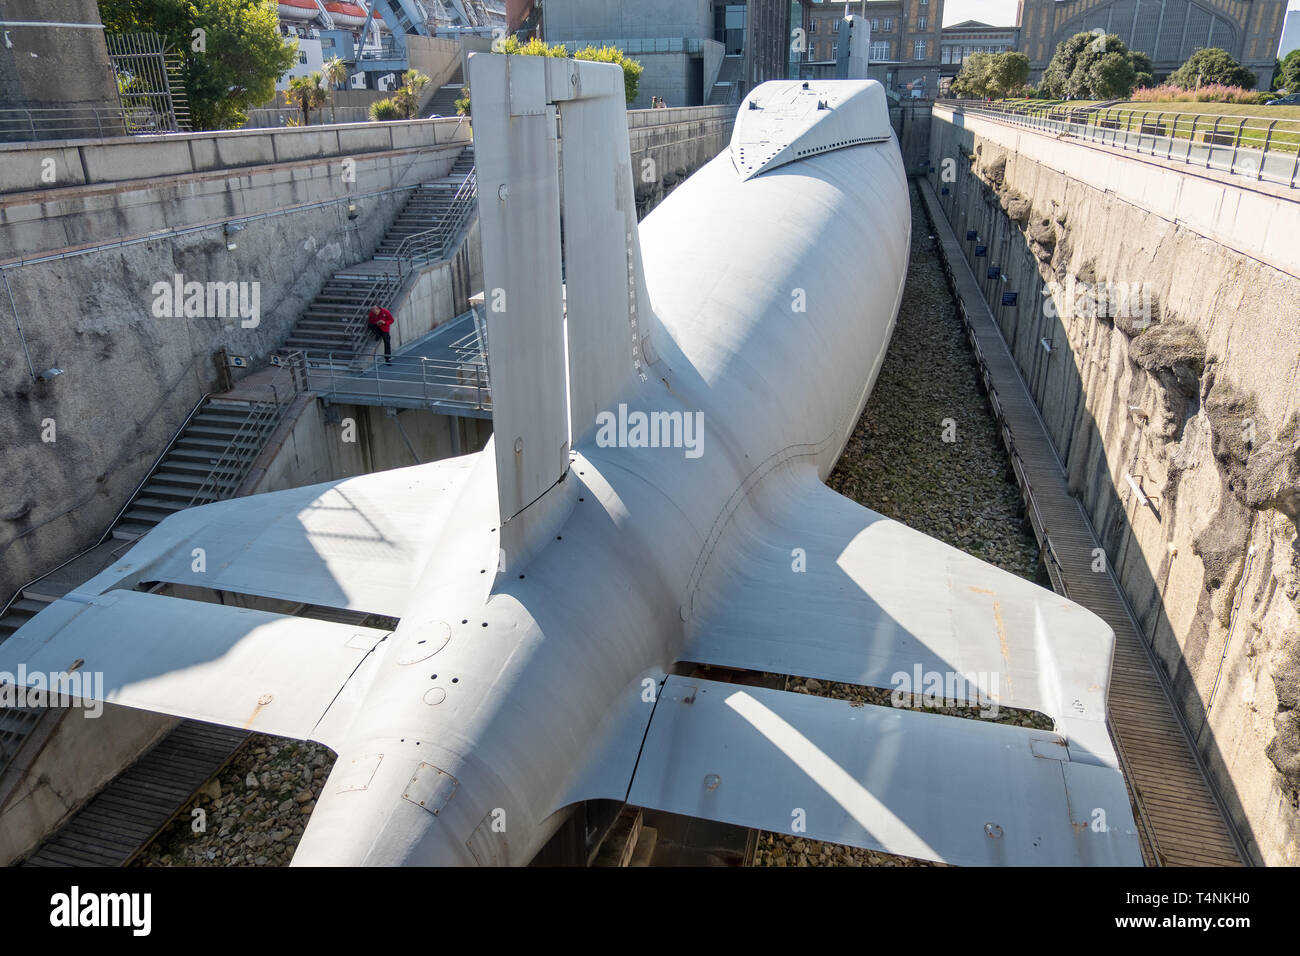 Cherbourg, France - September 01, 2018: Nuclear submarine Le Redoutable of French Navy in the City of the Sea , maritime museum of Cherbourg. France - Stock Image